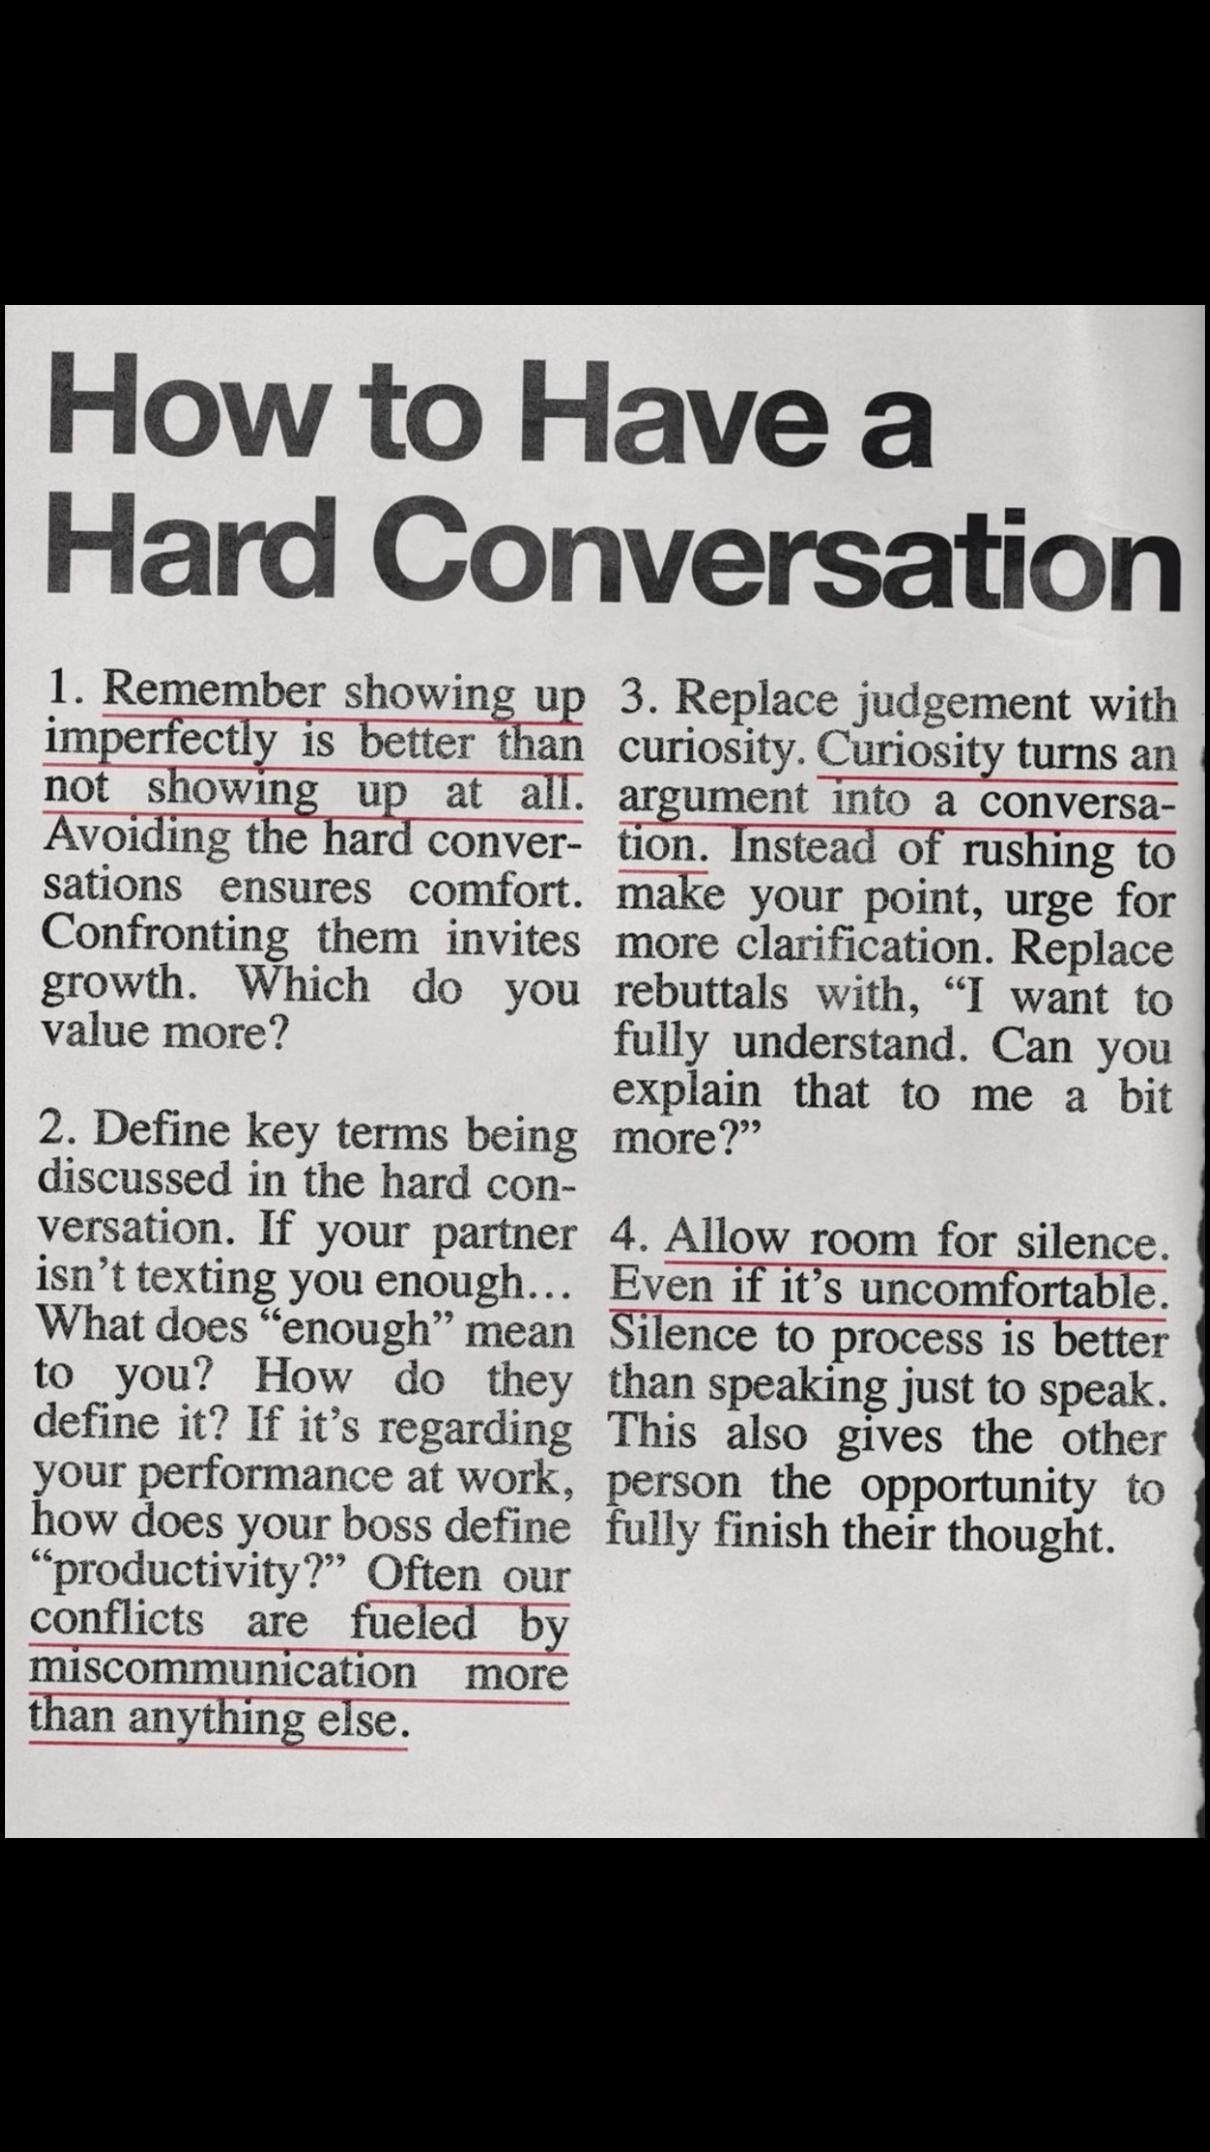 How to Have a Hard Conversation